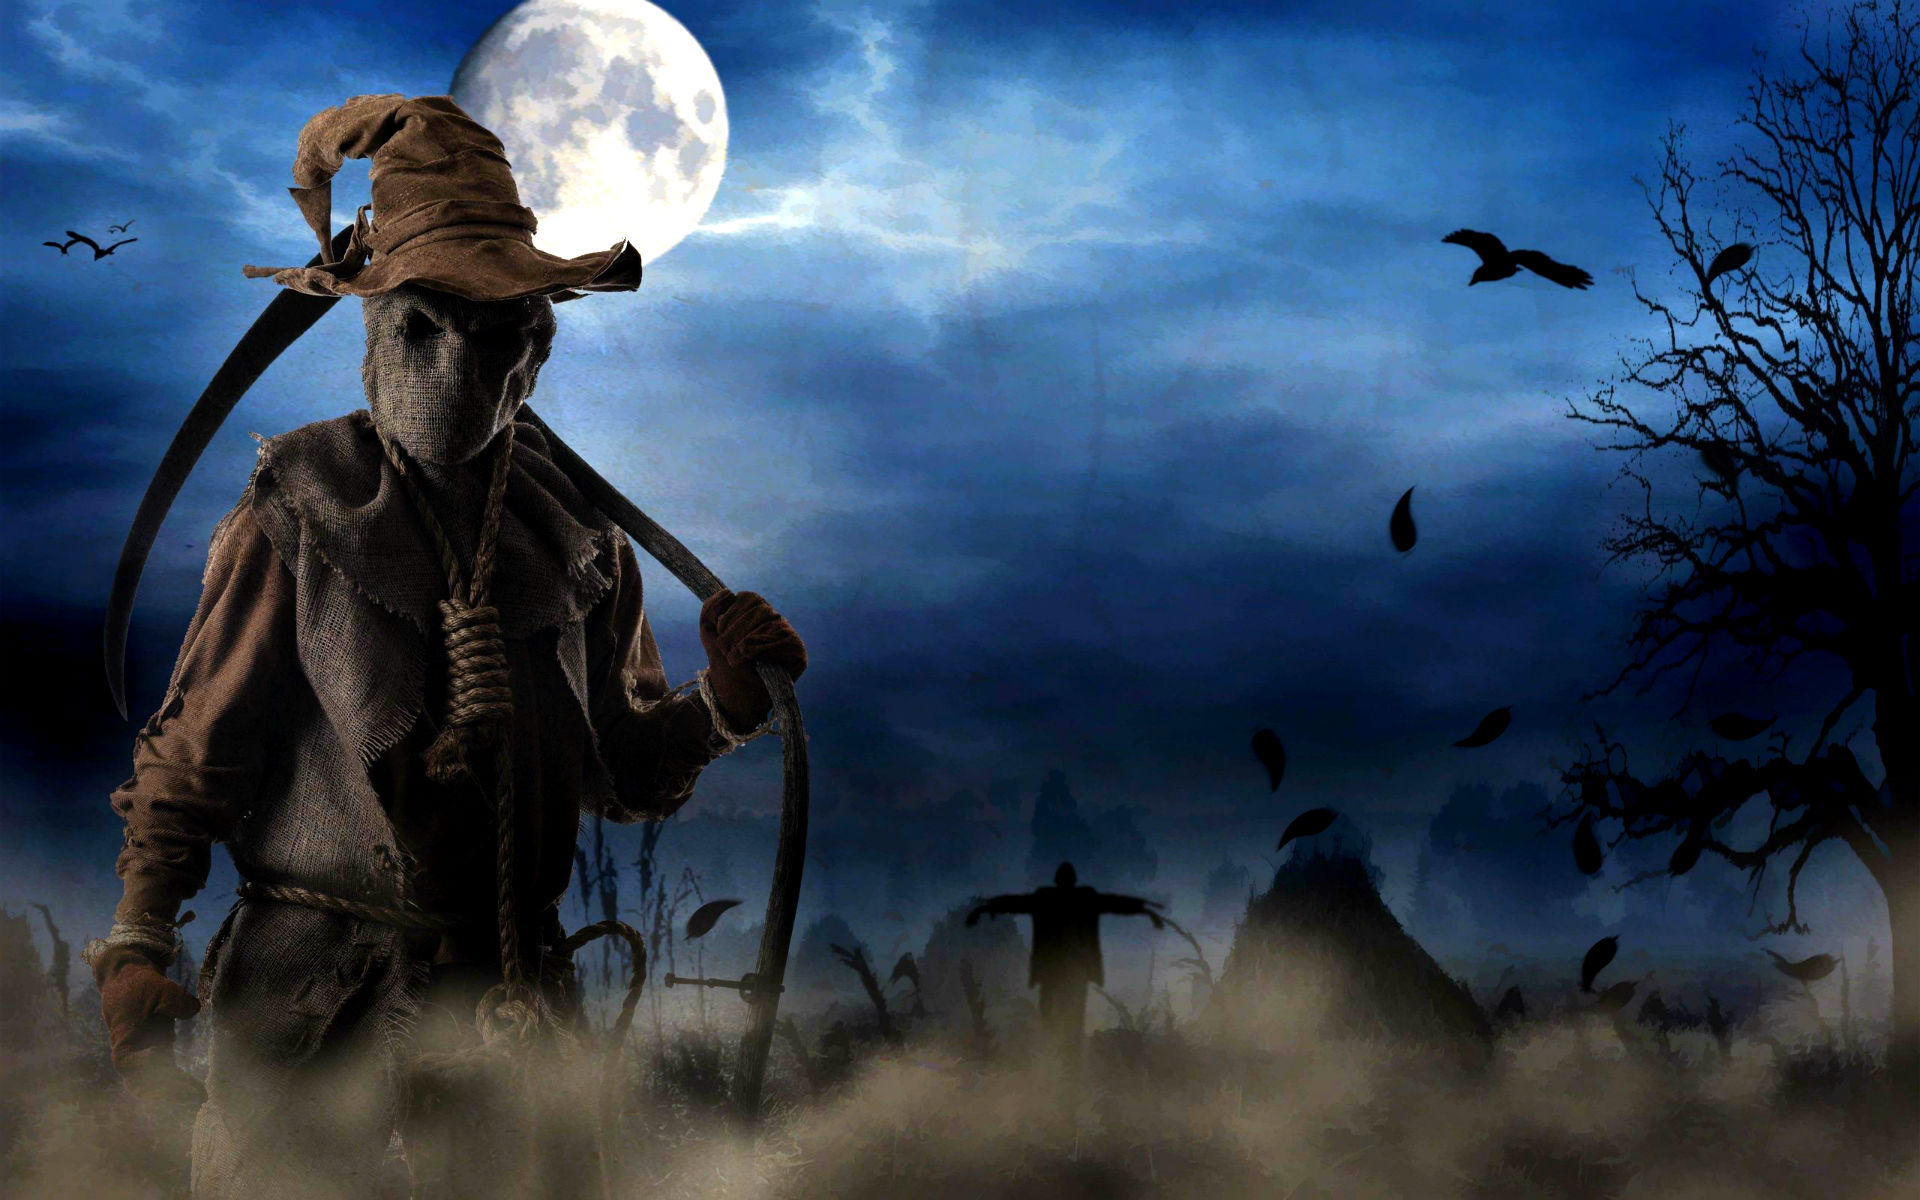 Wallpapers Download Best Horror Wallpapers For Mobile: Scary Halloween Man Wallpaper